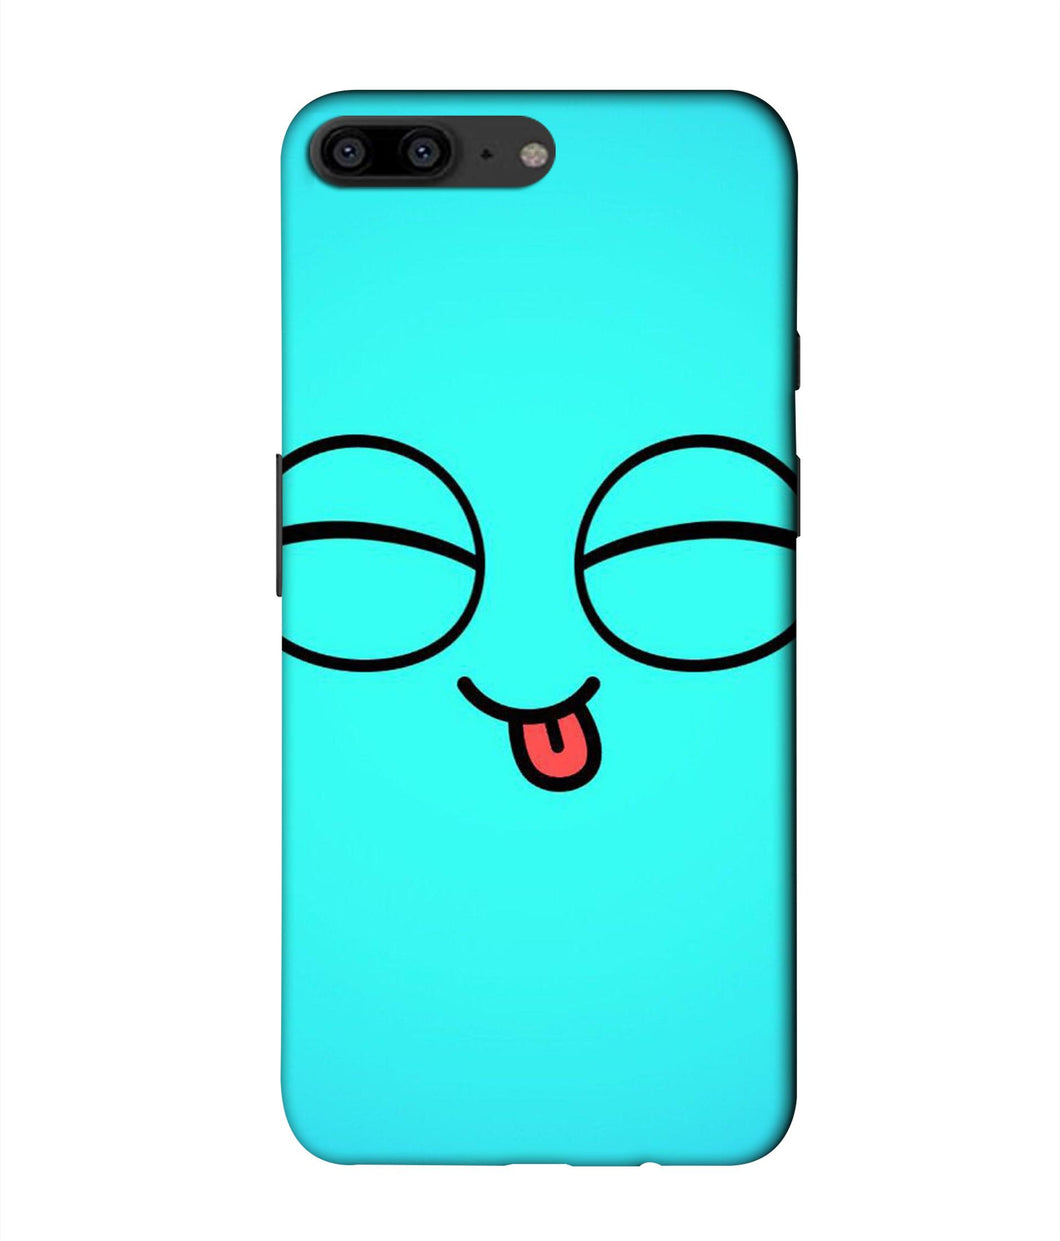 One plus 5 Blue Cute Mobile cover